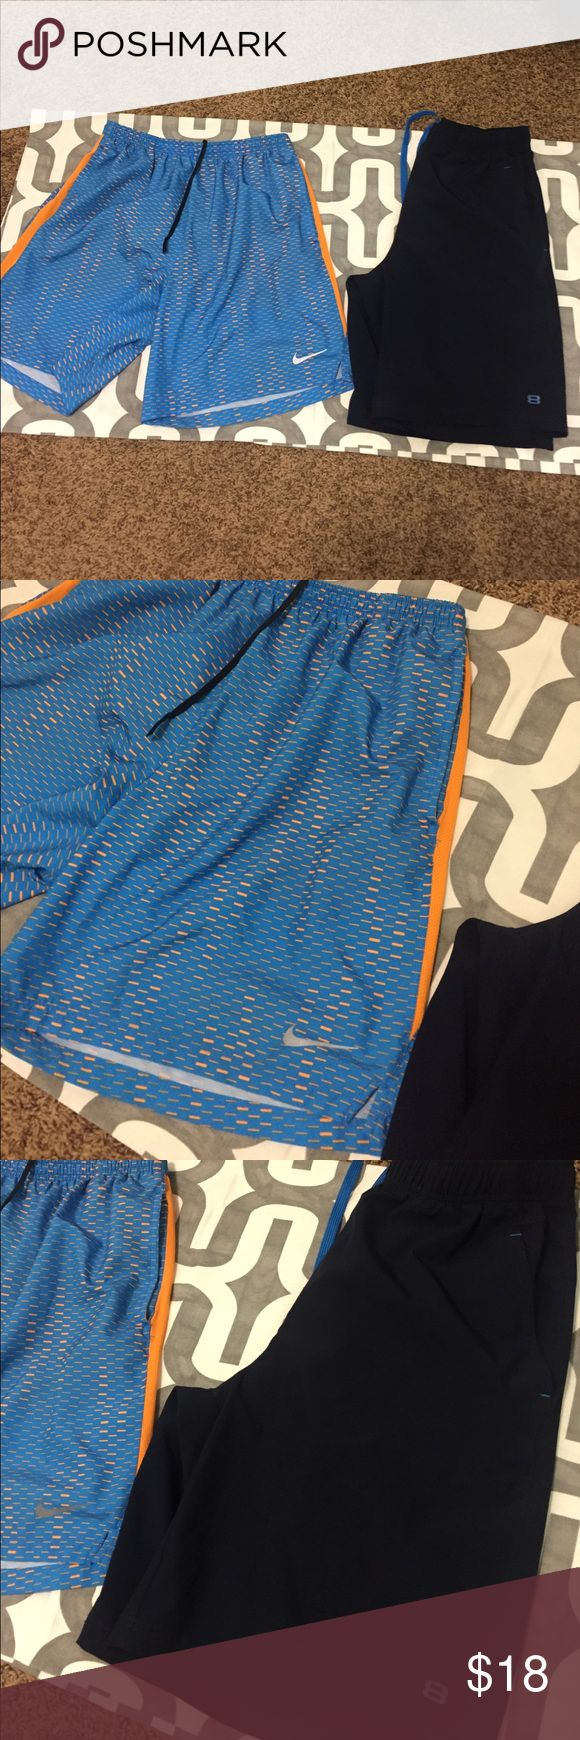 2 pack men's shorts! 2 pack of shorts!  (Price is mostly for nikes and others are bonus, so price will not be lower to separate) orange and blue nikes with lining inside in great condition, size L. Also includes macy shorts with pocket that fit my husband at the same time as the orange blue shorts. Nike Shorts Athletic